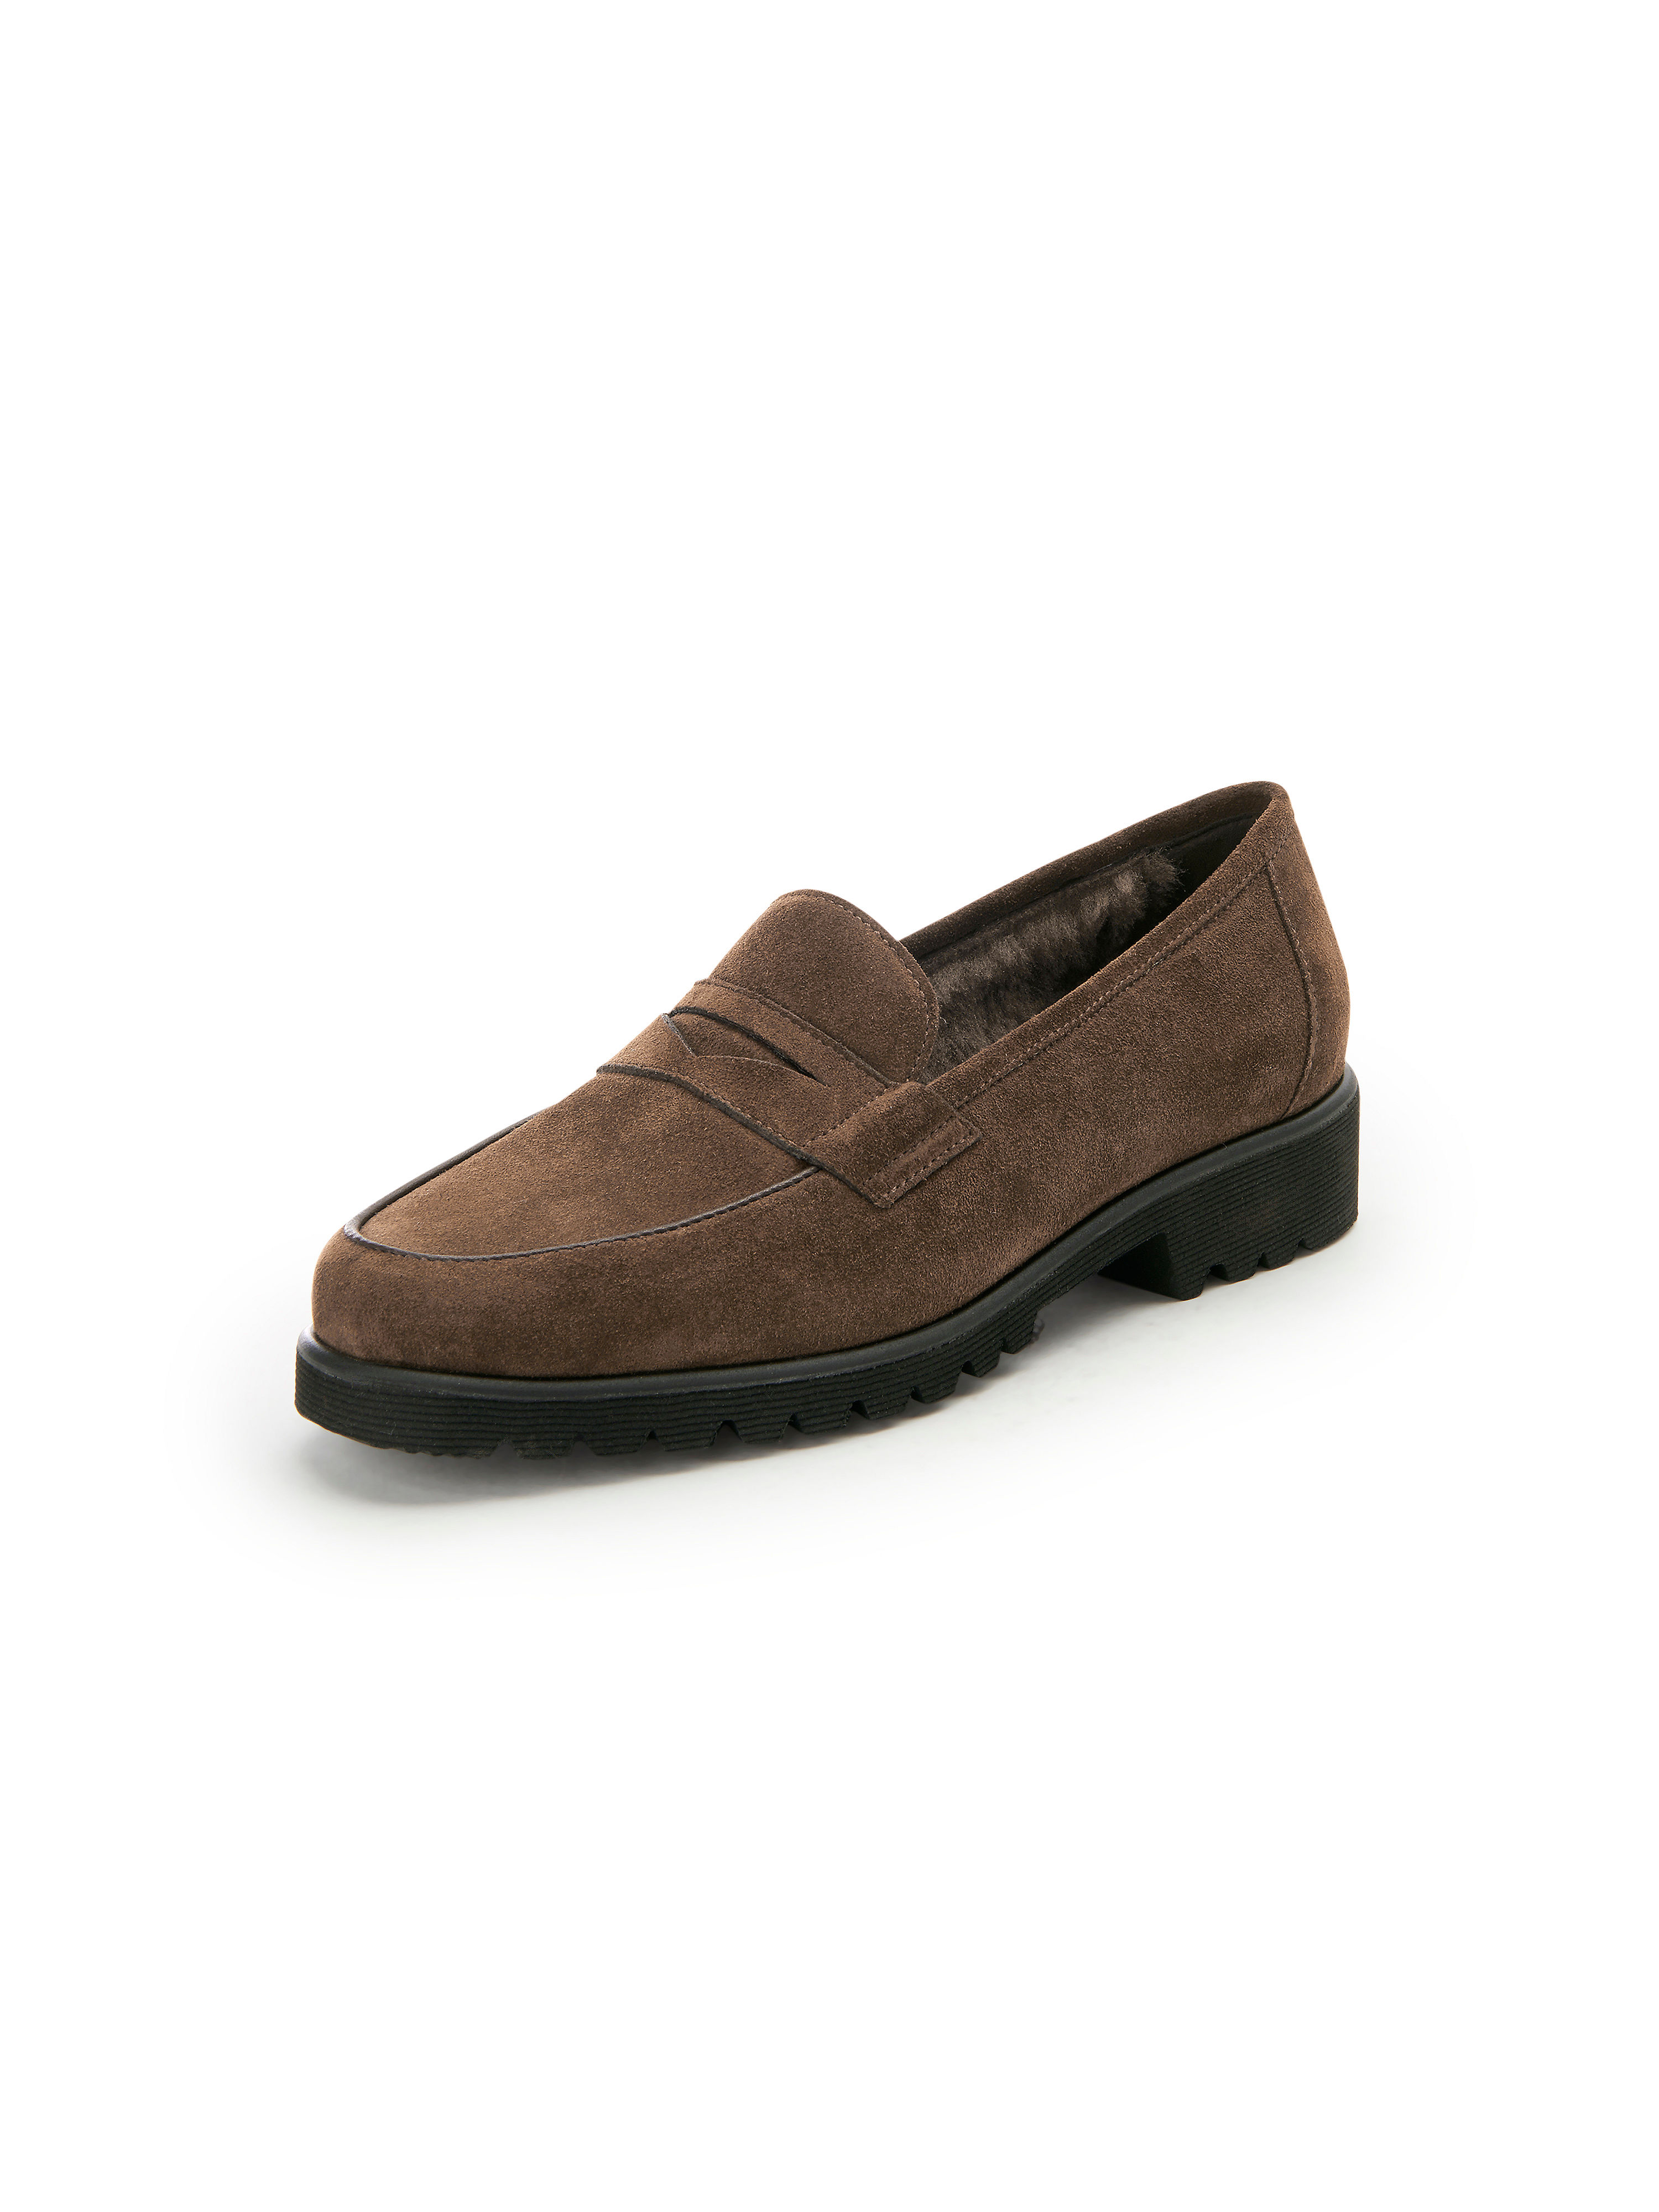 Les mocassins cuir  Peter Hahn exquisit marron taille 38